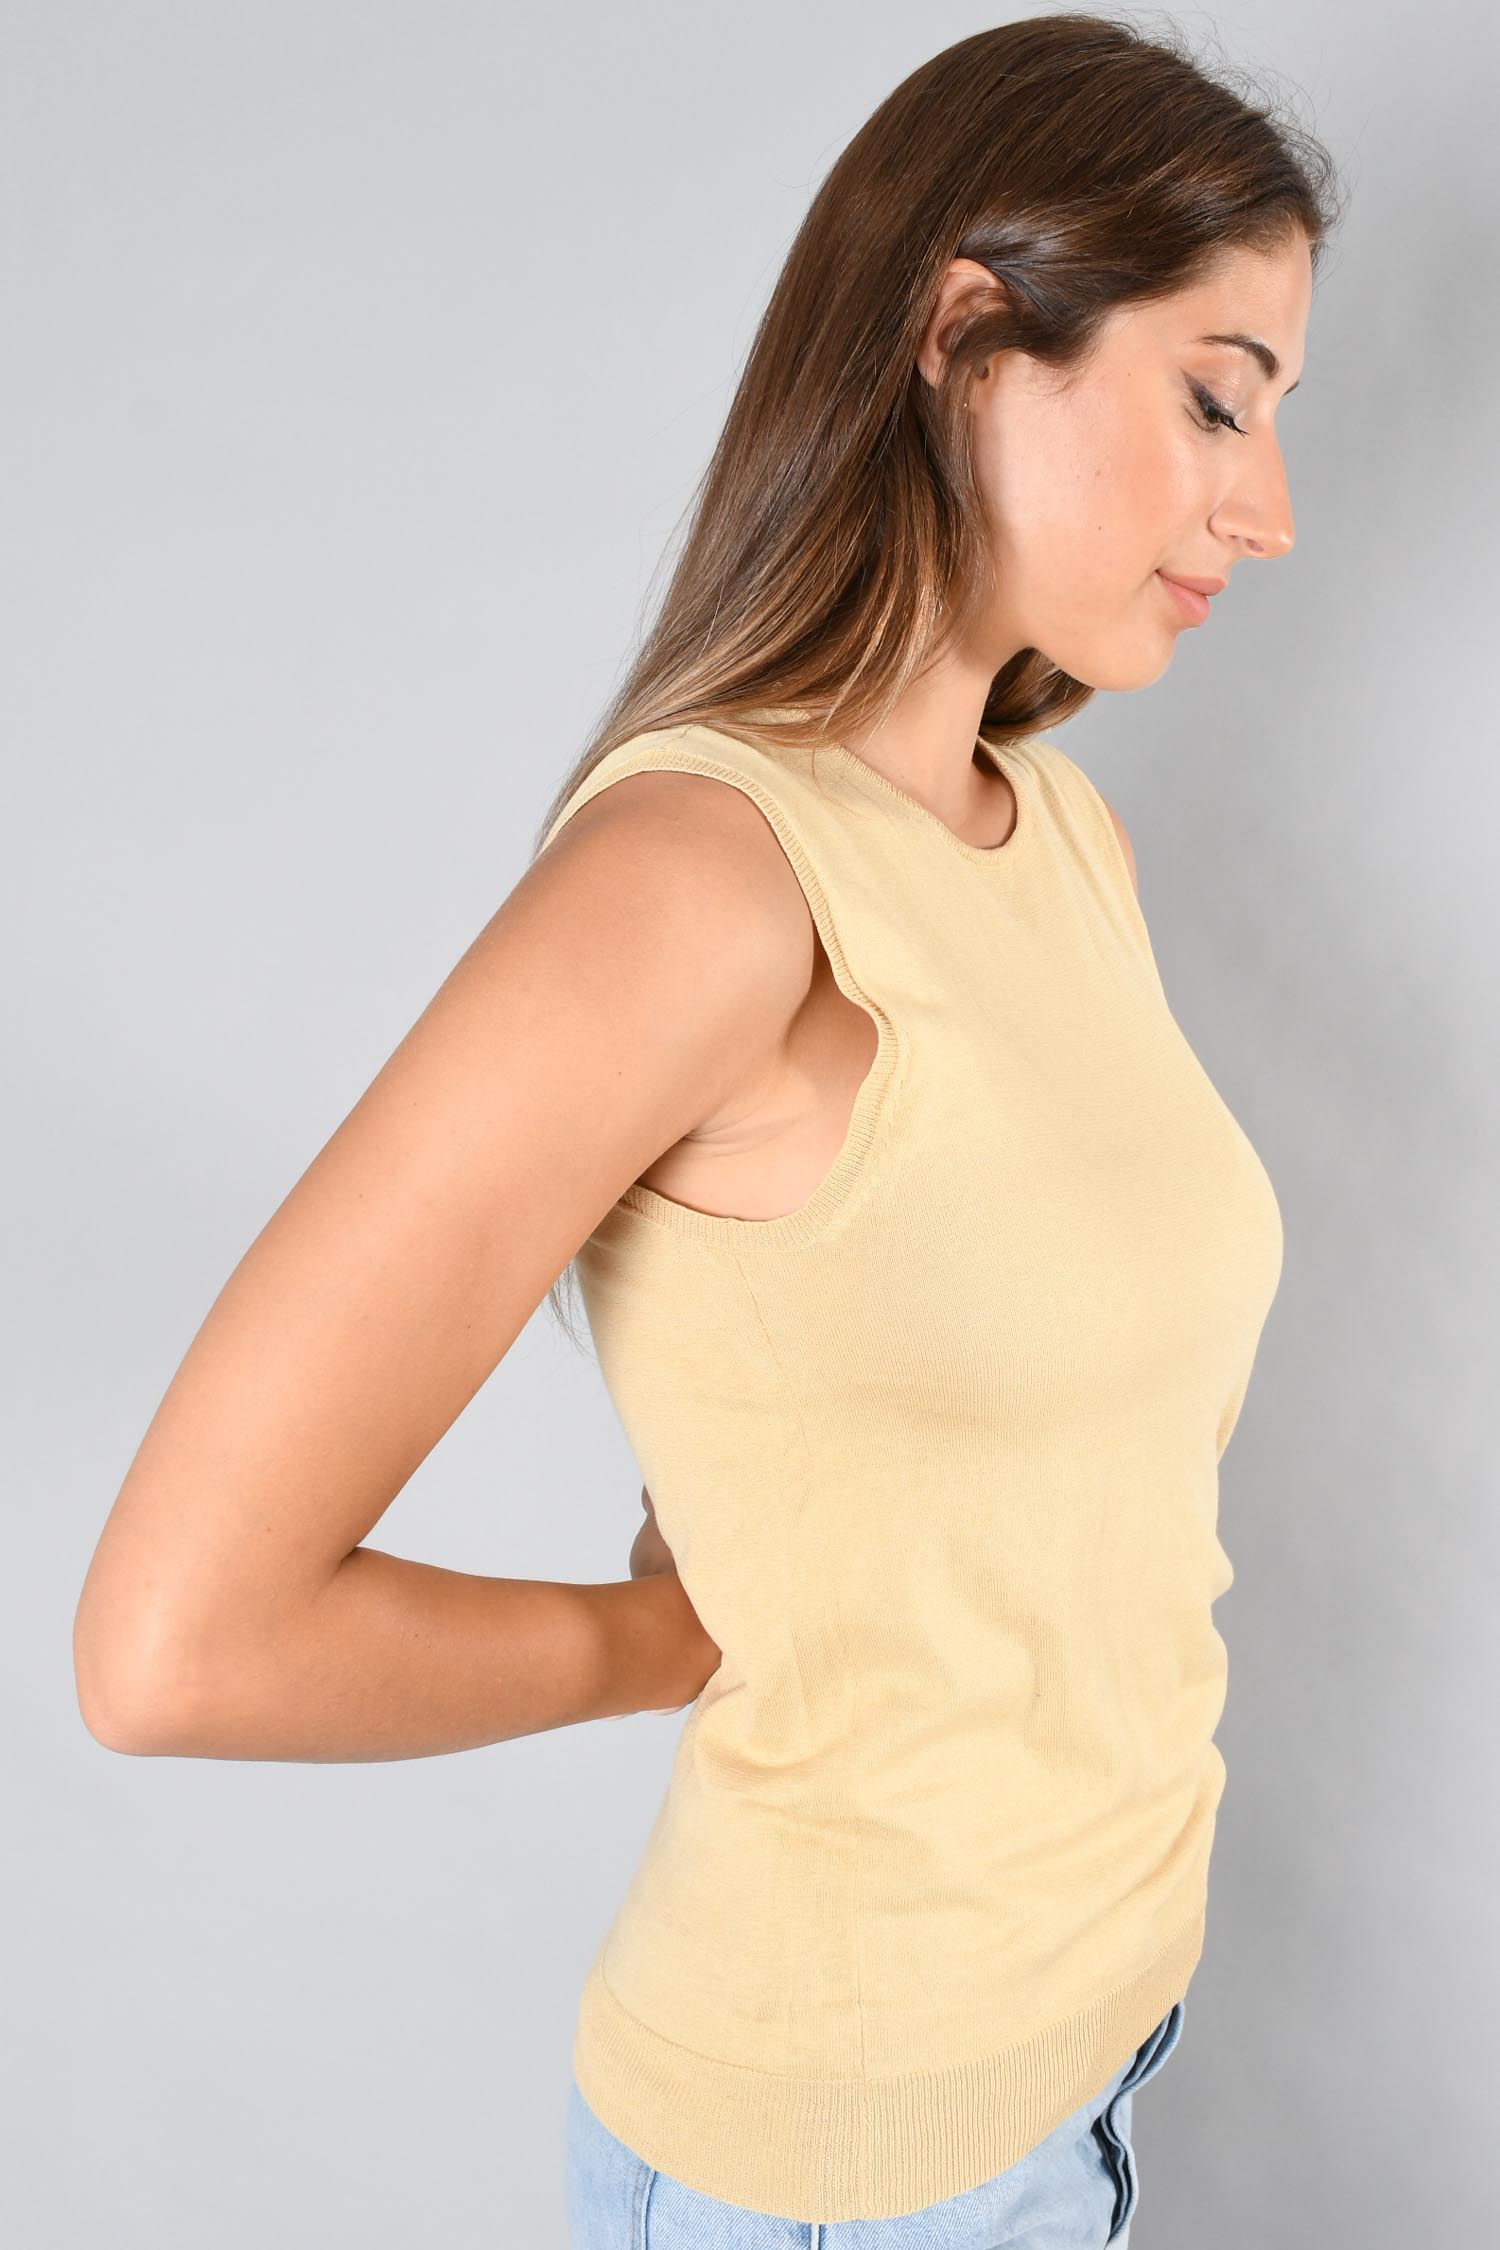 Enfold Gold Sleeveless Top Size 38